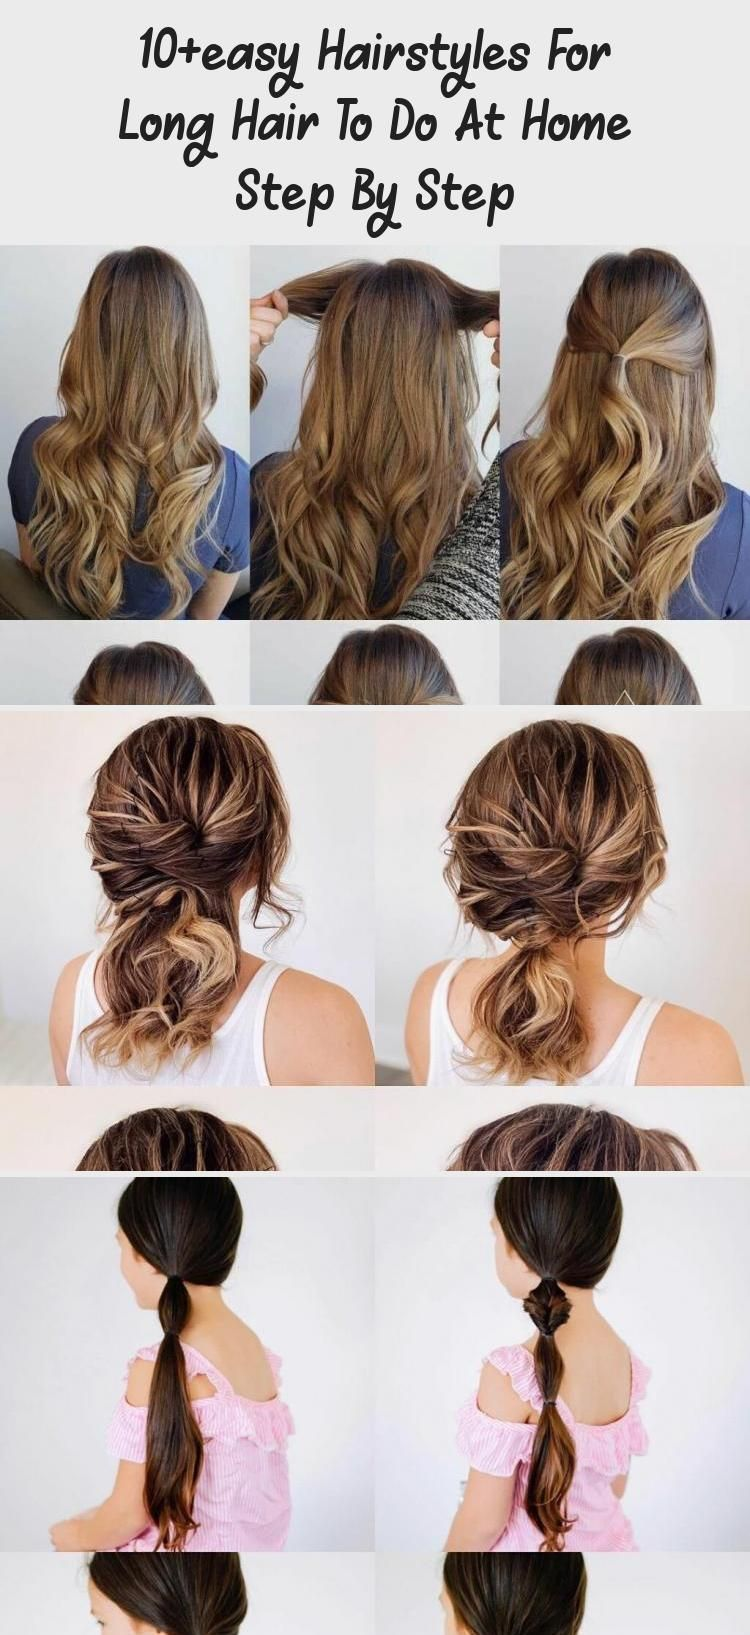 10easy hairstyles for long hair to do at home step